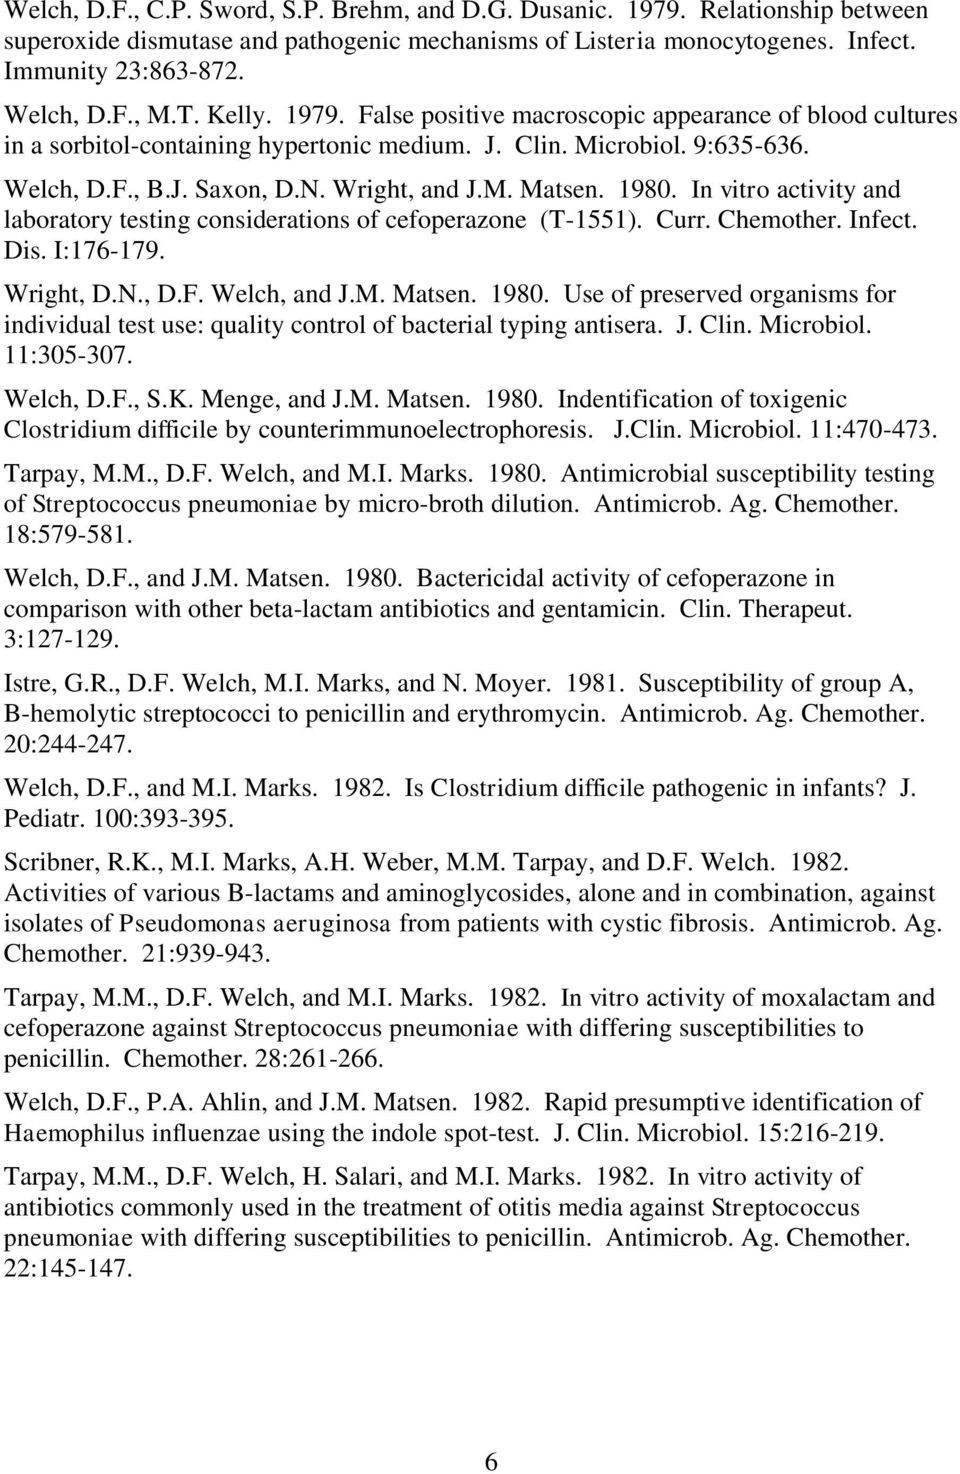 1980. In vitro activity and laboratory testing considerations of cefoperazone (T-1551). Curr. Chemother. Infect. Dis. I:176-179. Wright, D.N., D.F. Welch, and J.M. Matsen. 1980.